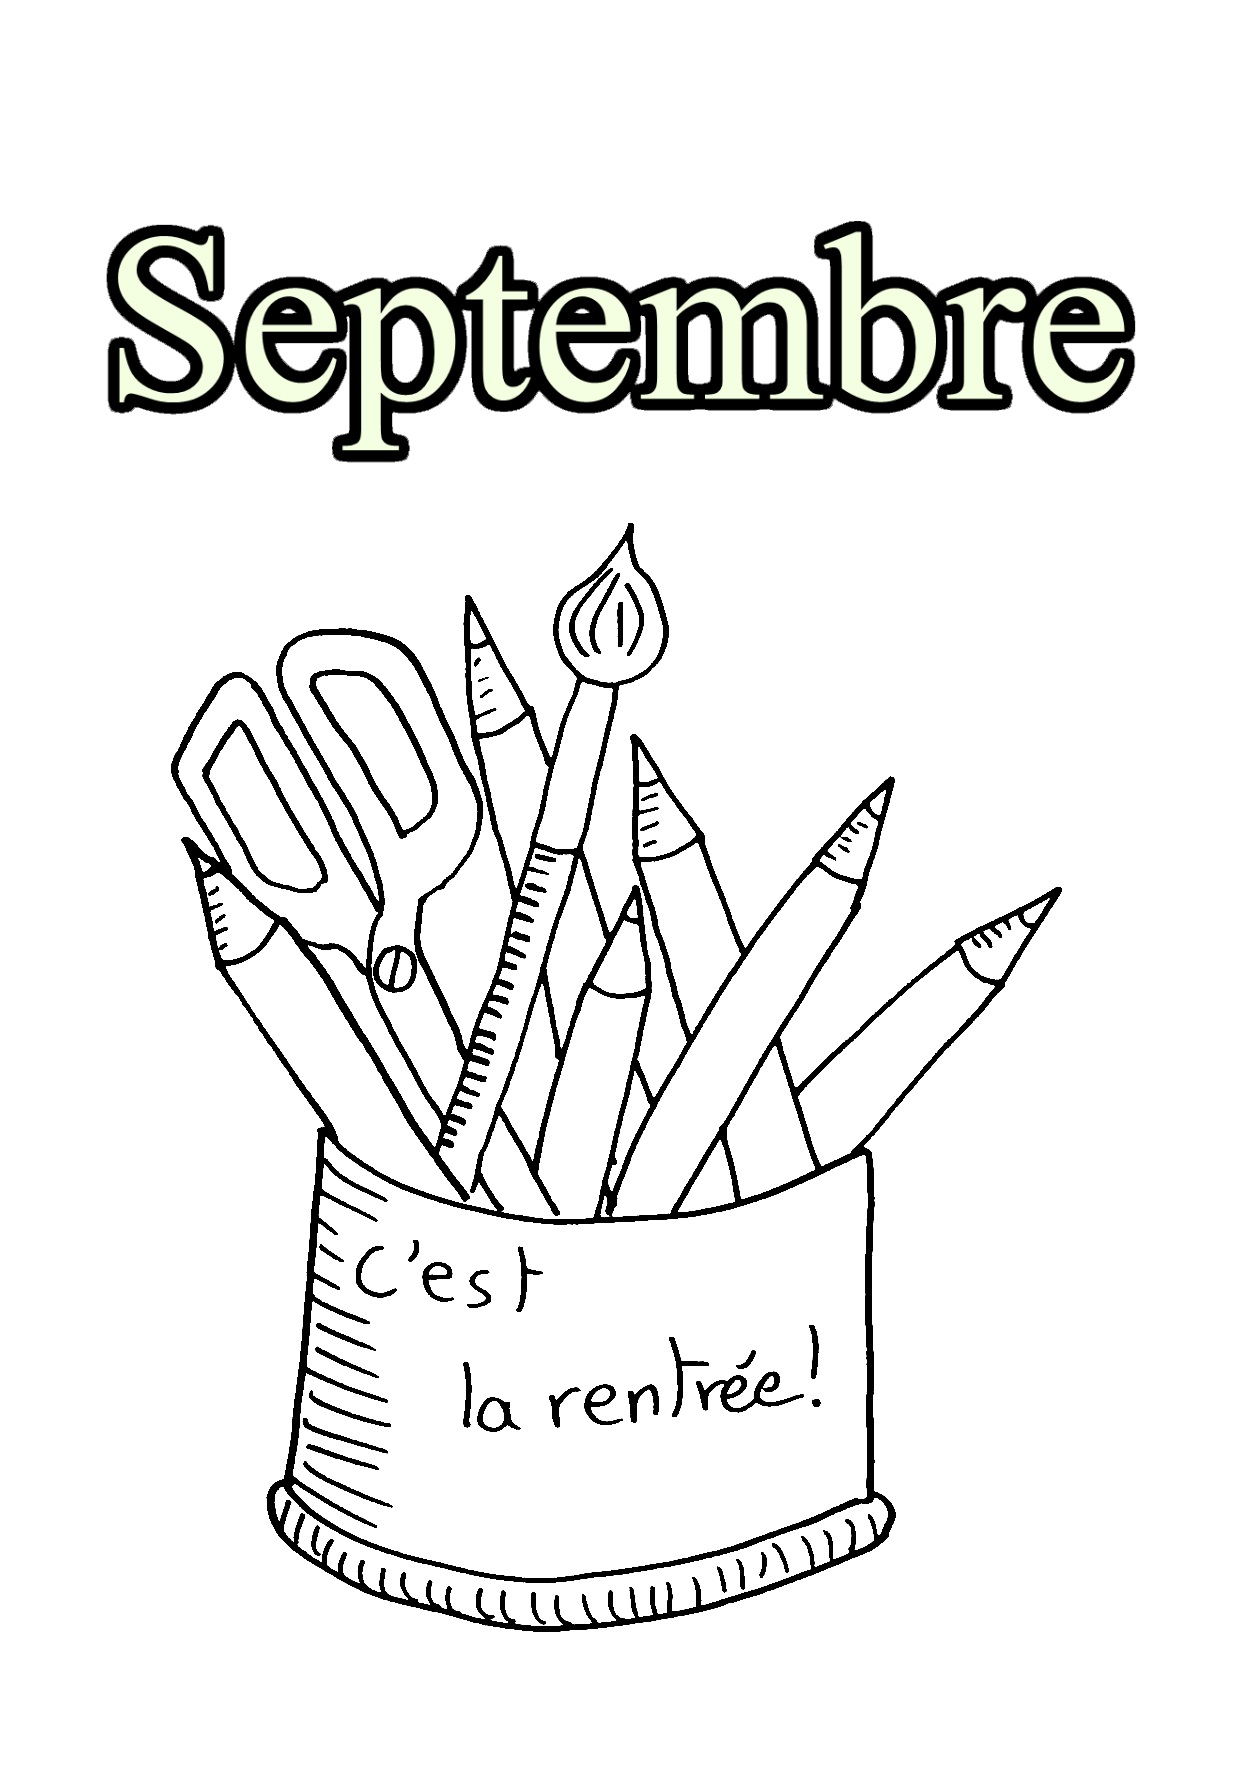 Coloriage Septembre